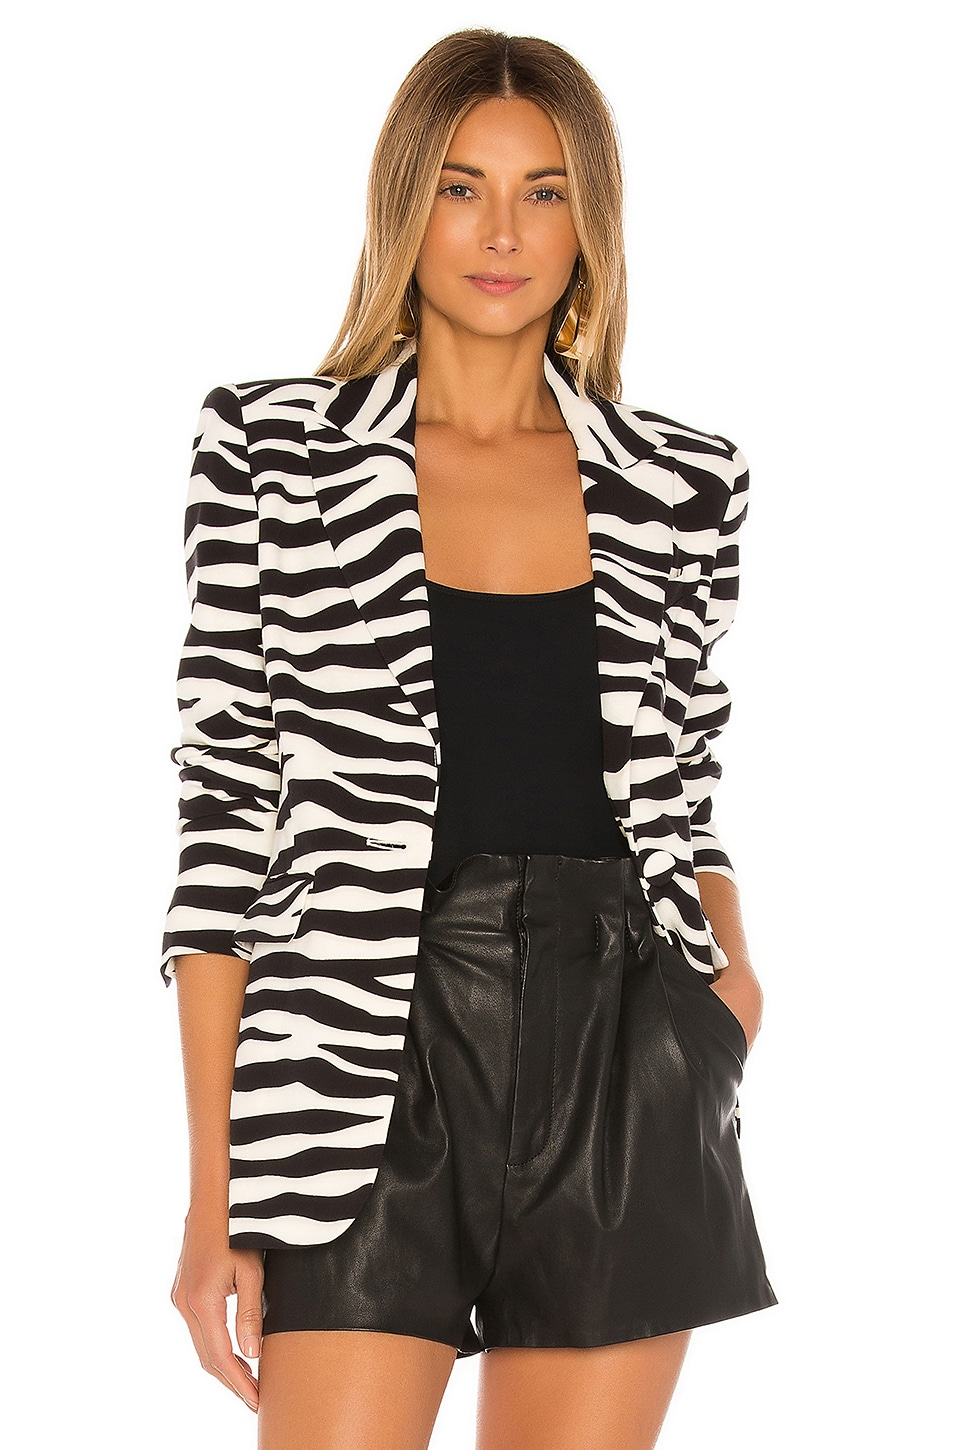 RACHEL ZOE Stephani Jacket in Multi